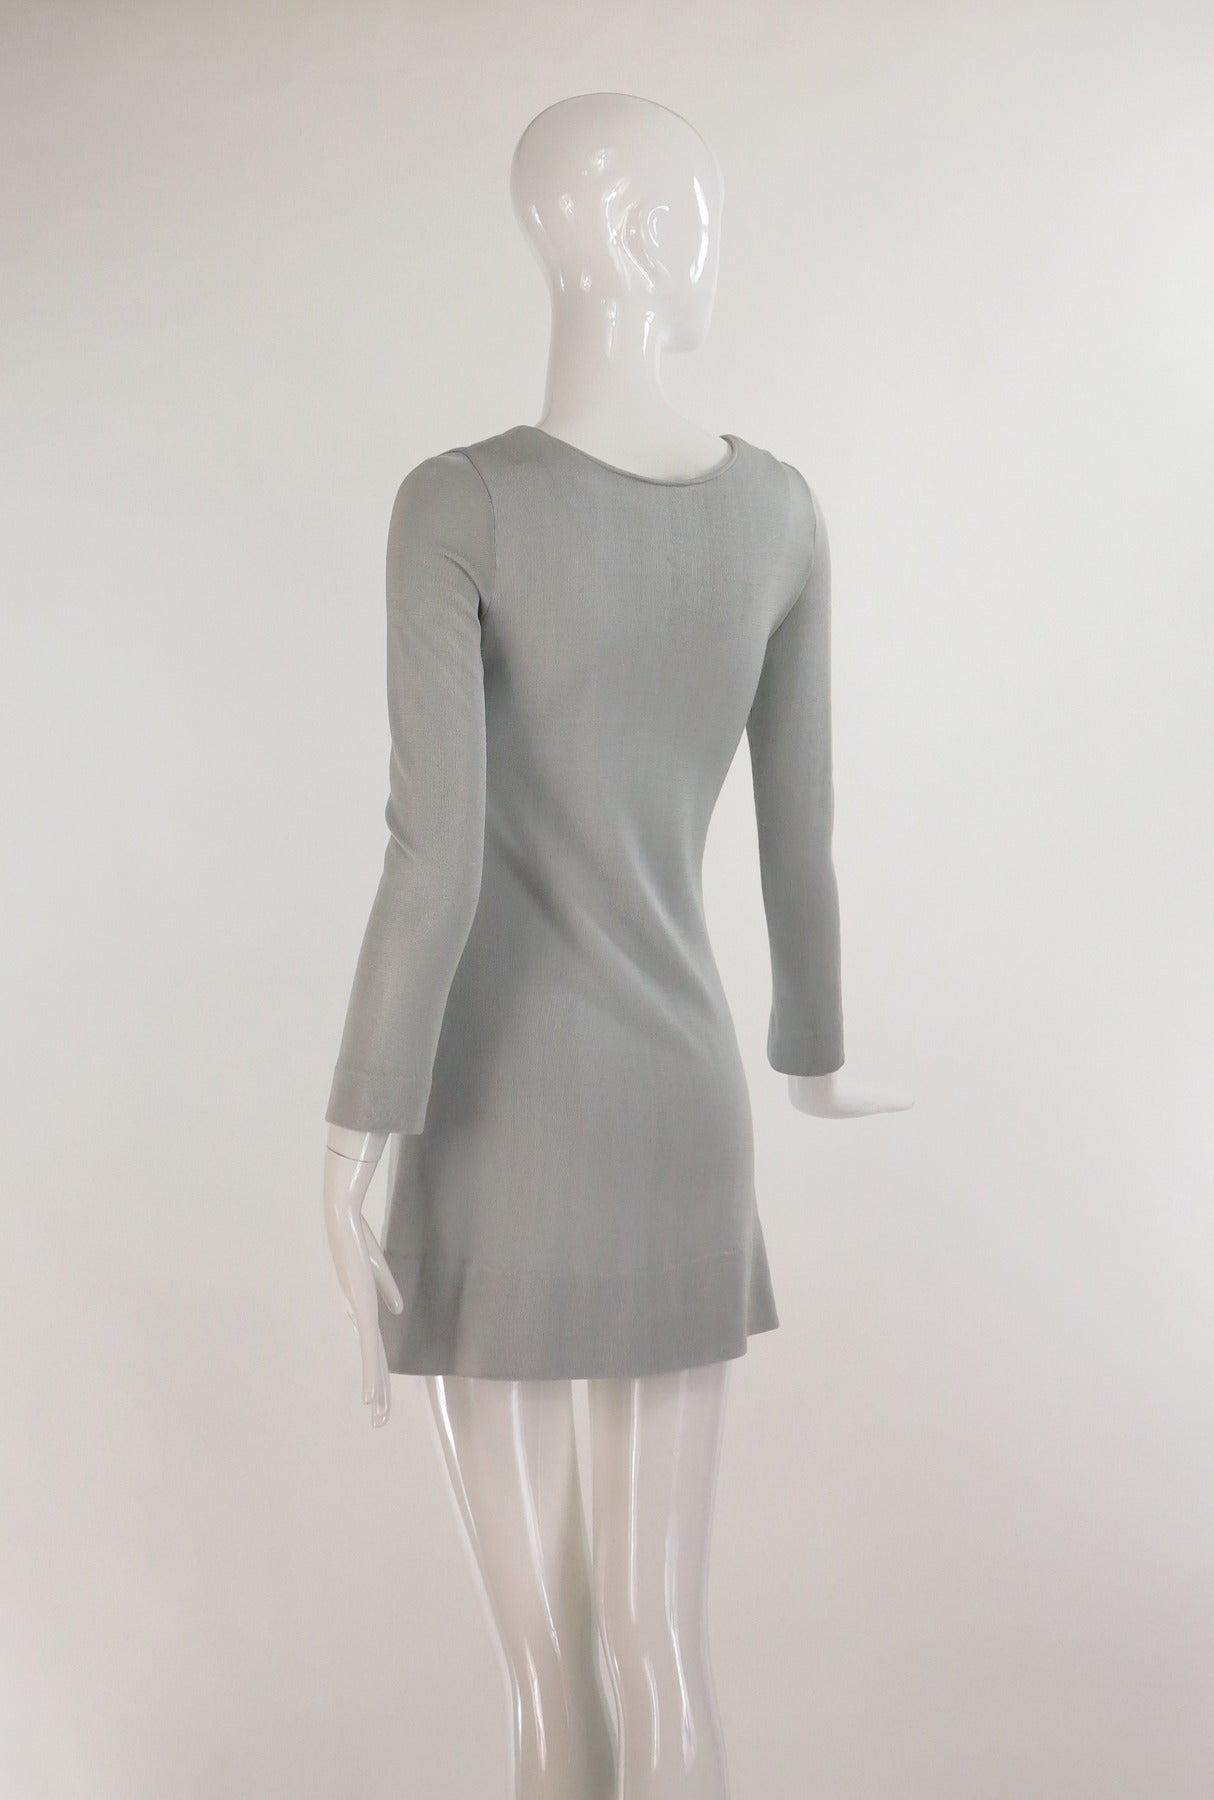 Paraphernalia by Betsey Johnson 1960s silver metallic knit mini dress 6